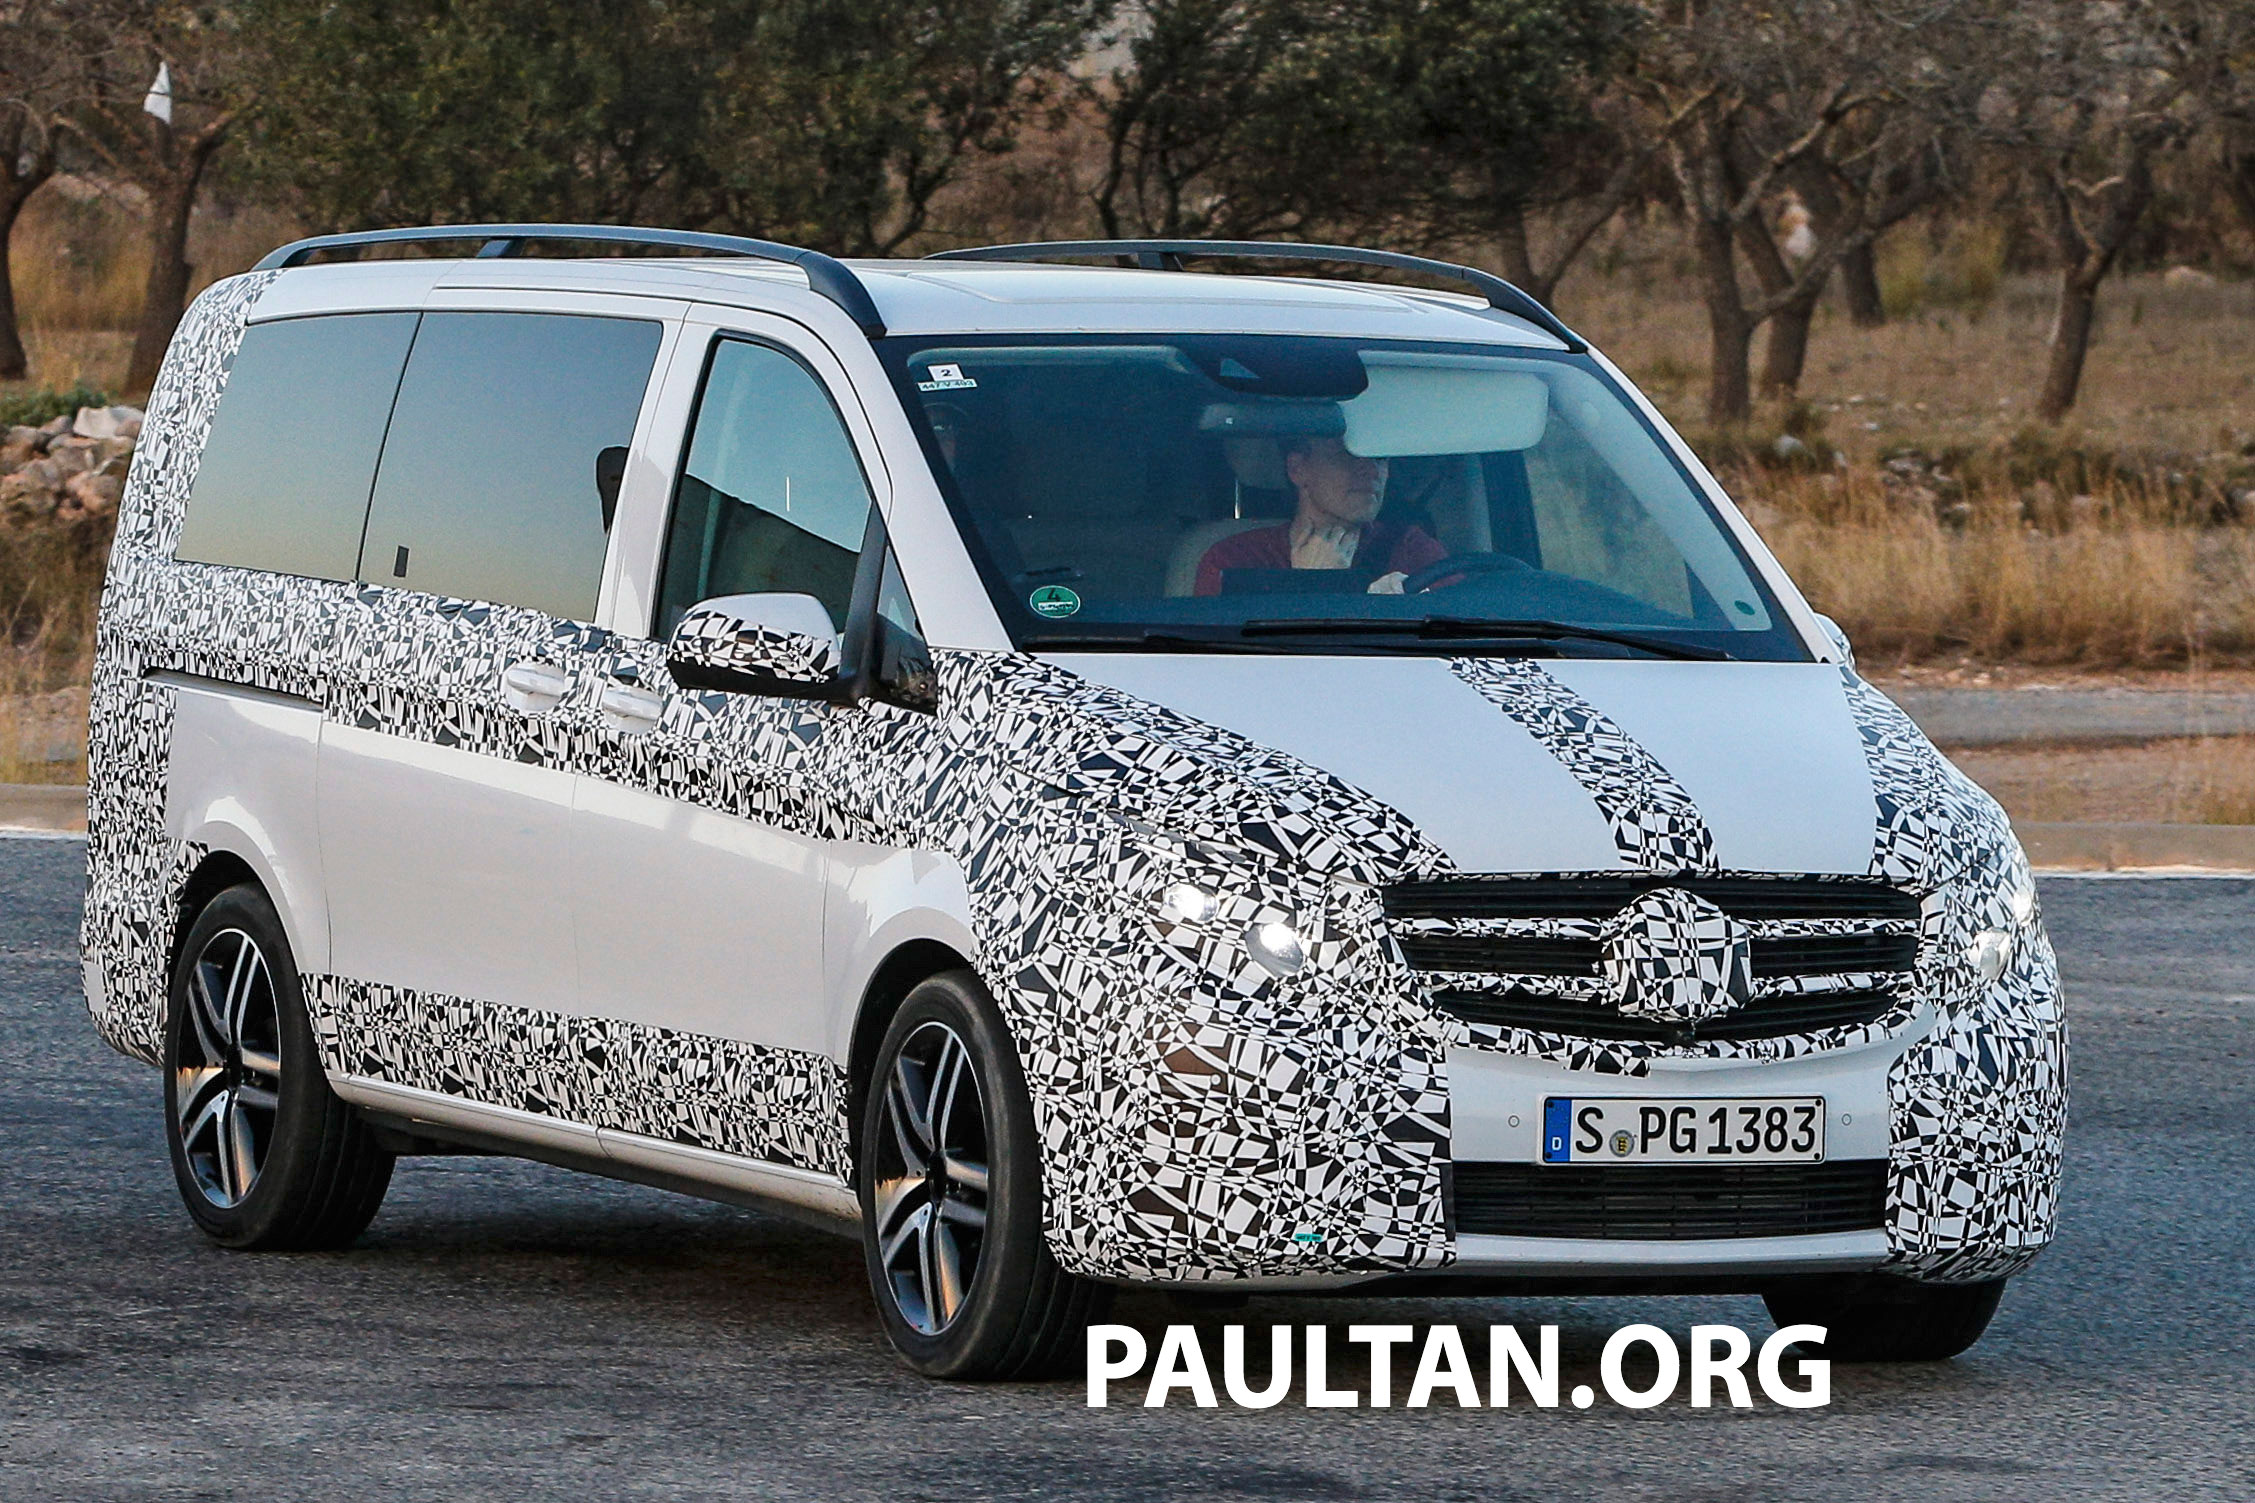 w447 mercedes benz v class viano sighted on test. Black Bedroom Furniture Sets. Home Design Ideas